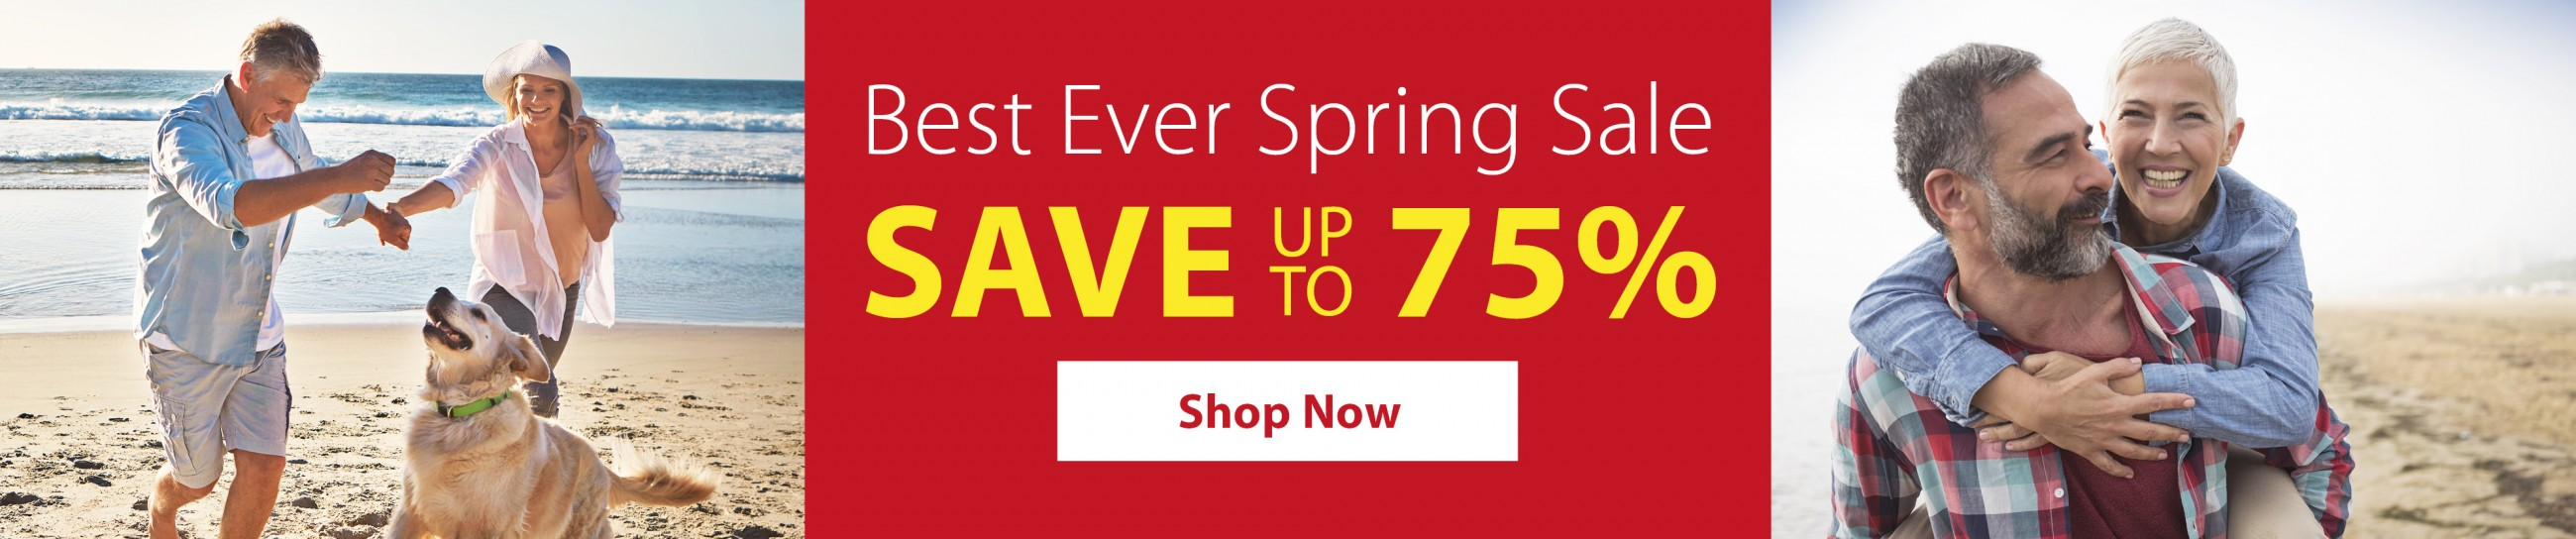 Spring Sale - up to 75% off